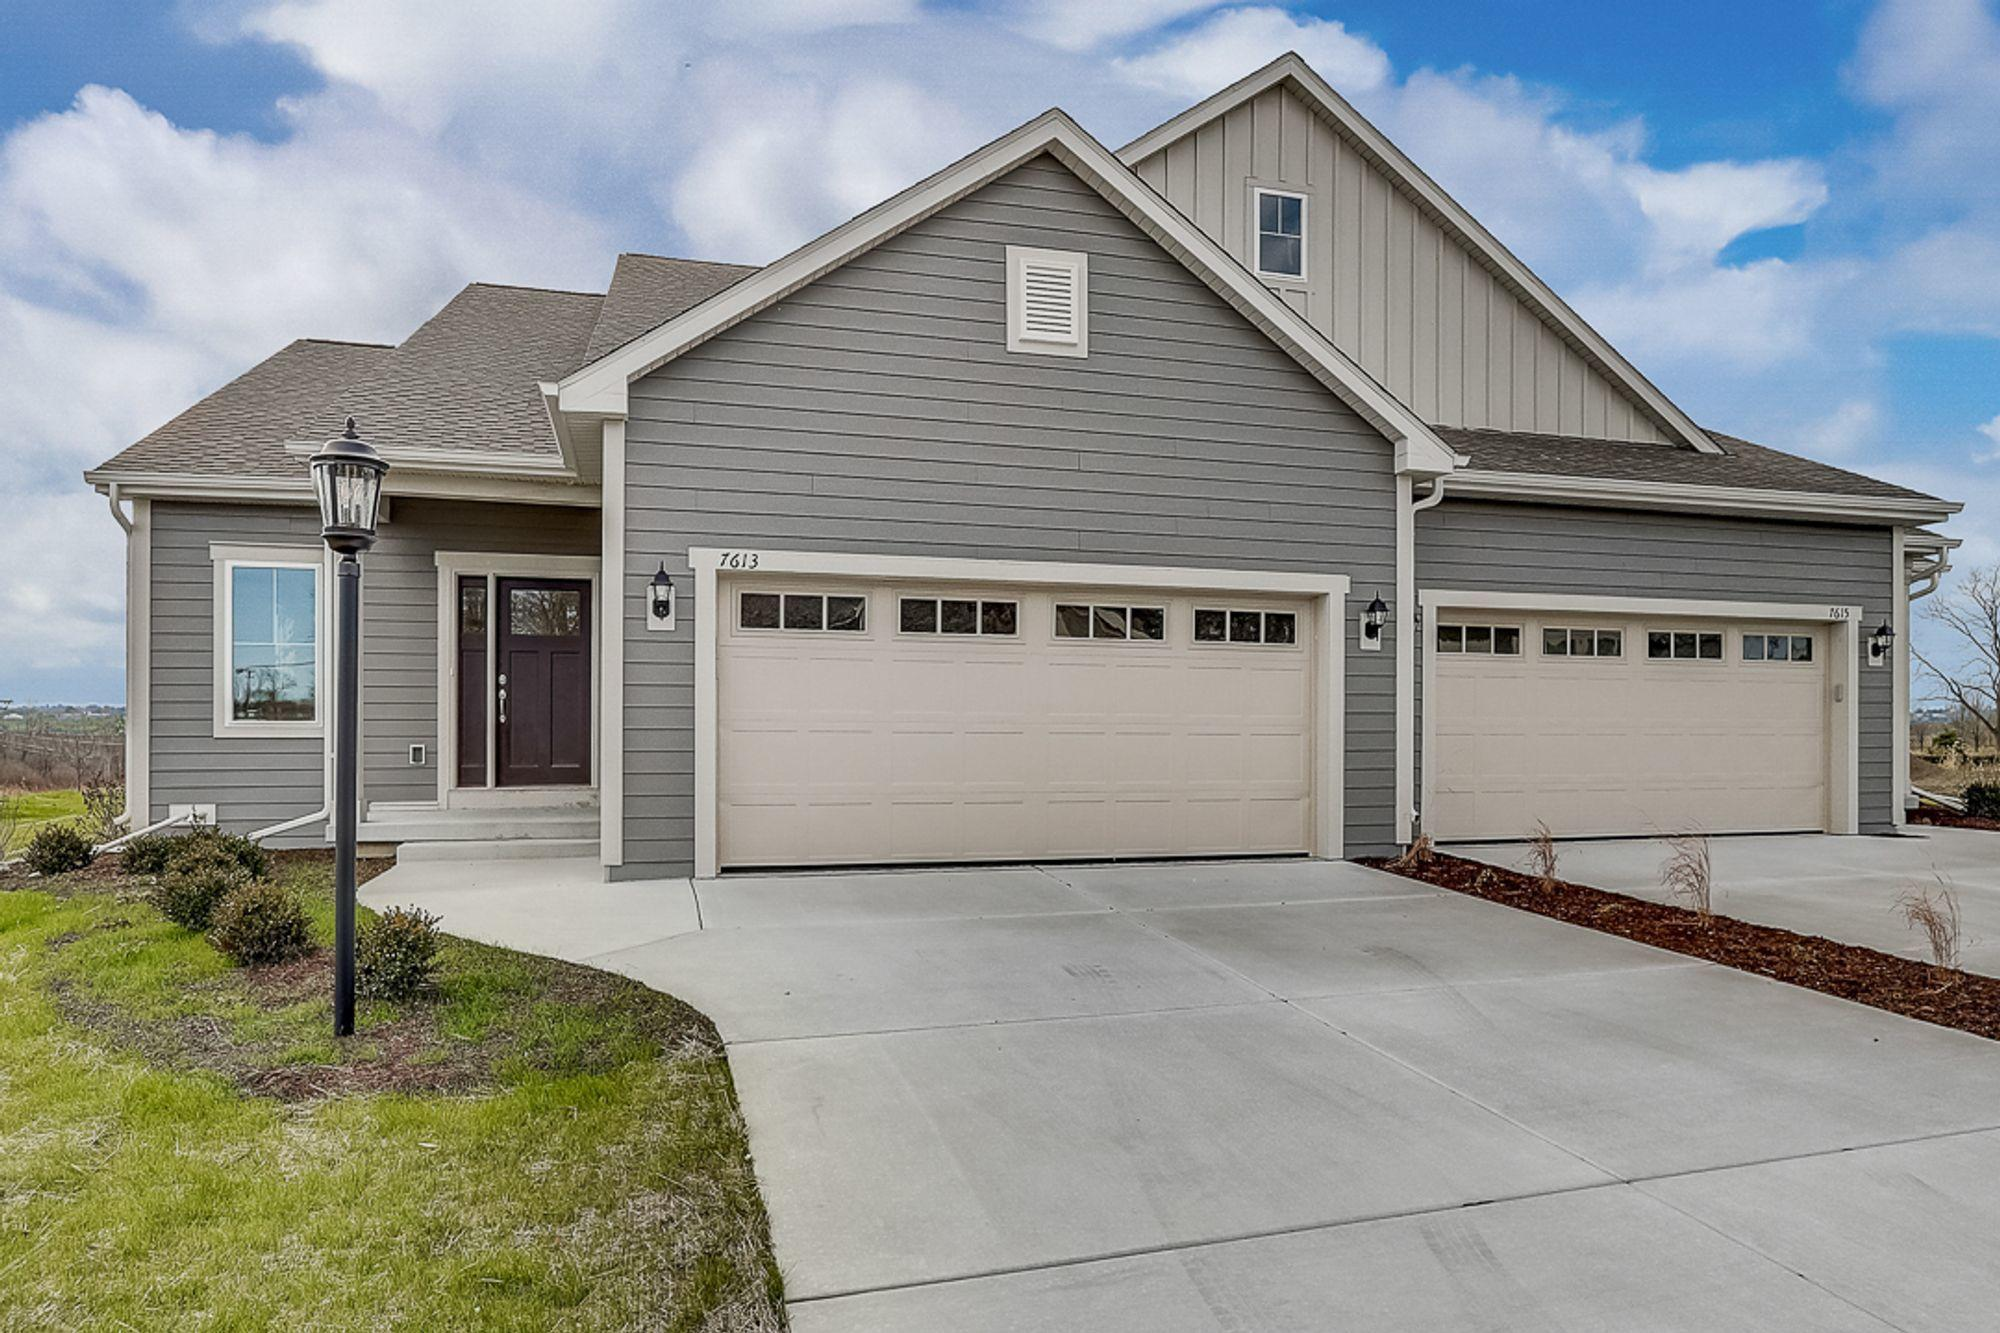 7613 Park Circle Way, Franklin, Wisconsin 53132, 2 Bedrooms Bedrooms, 6 Rooms Rooms,2 BathroomsBathrooms,Condominium,For Sale,Park Circle Way,1722414